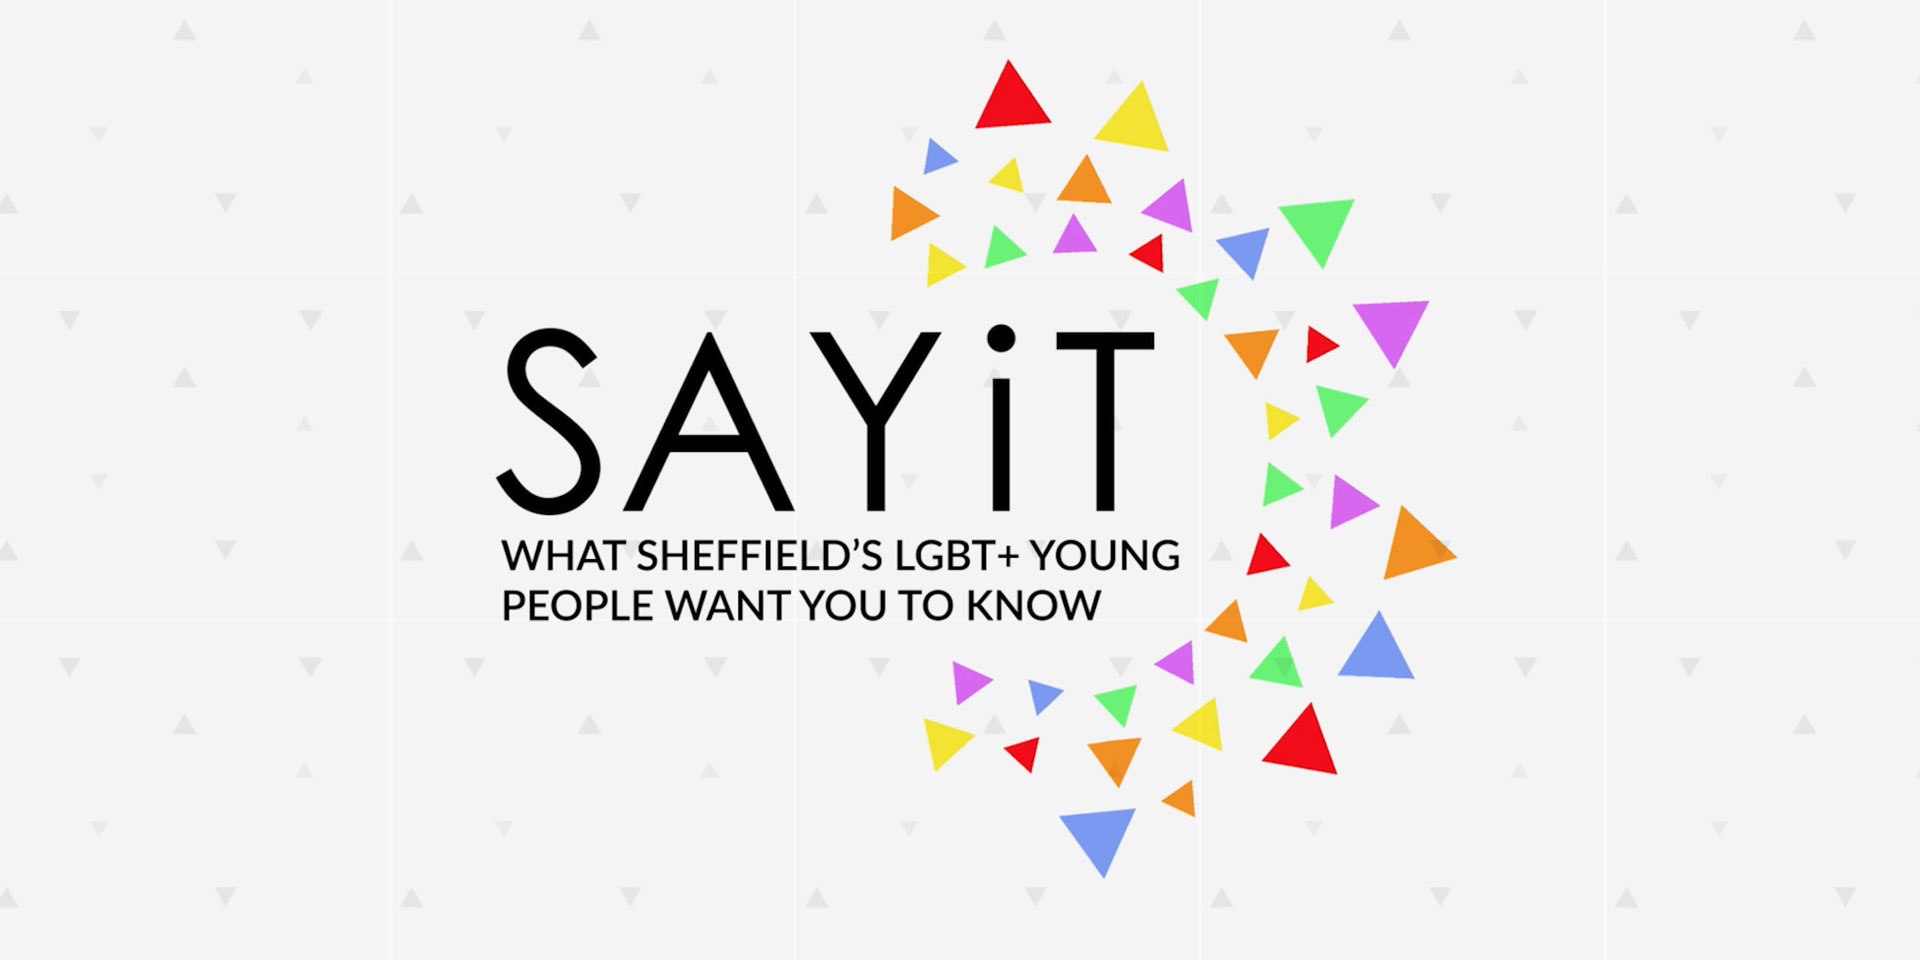 SAYIT-WHAT-SHEFFIELD-LGBT-YOUNG-PEOPLE-WANT-YOU-TO-KNOW